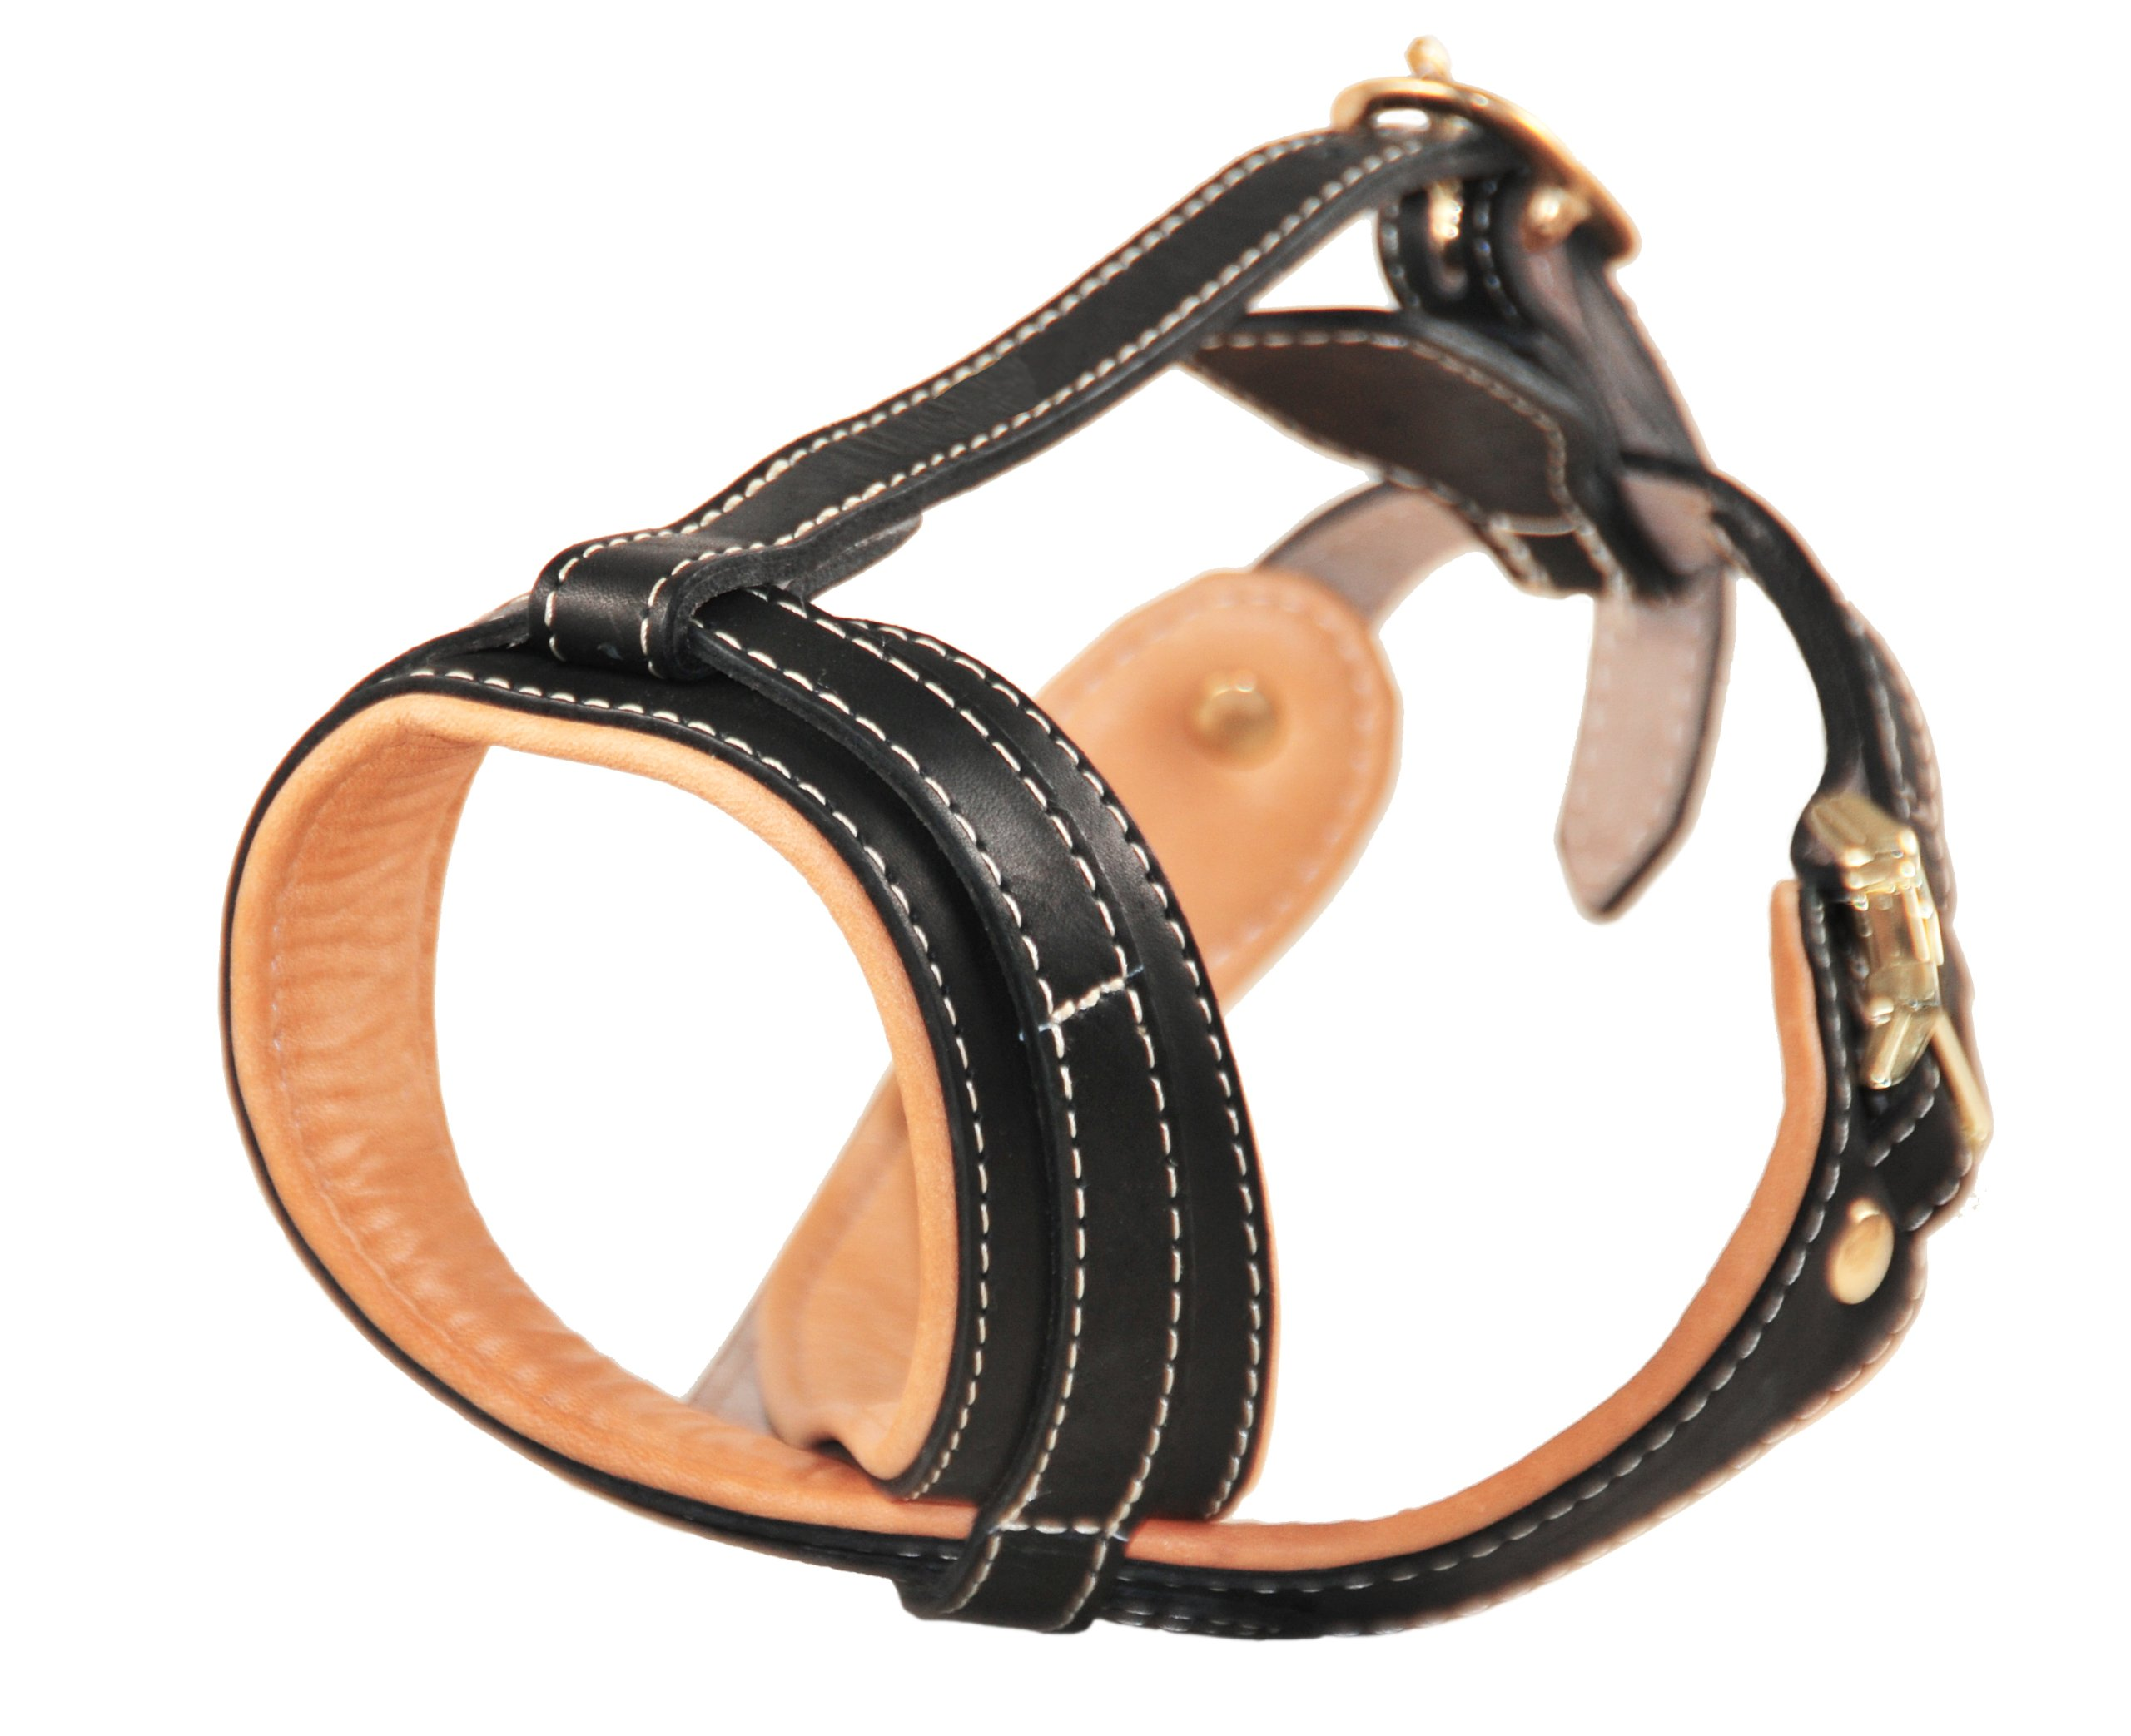 Dean & Tyler Royal Leather Padded Muzzle, Pit Bull by Dean & Tyler (Image #1)